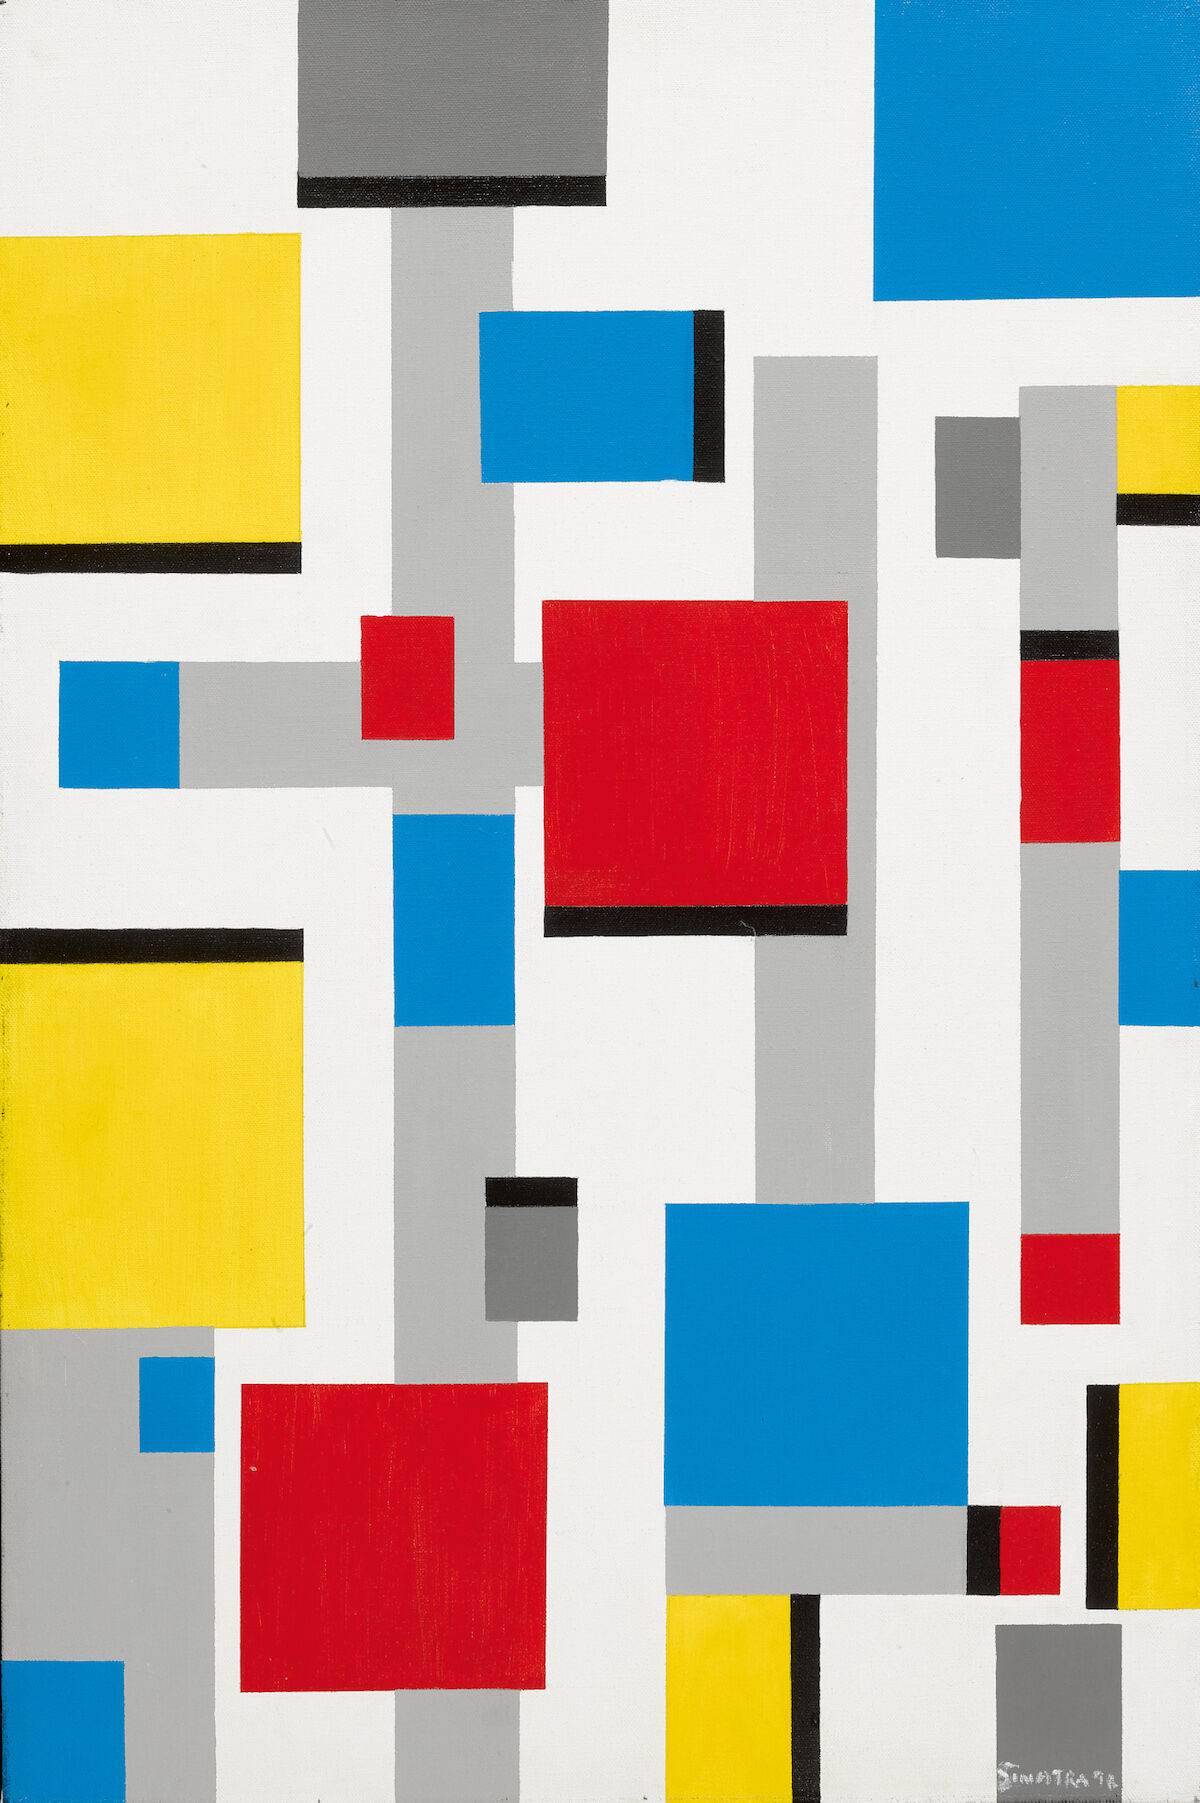 Frank Sinatra, Abstract after Mondrian, 1991, oil on canvas, est. $10,000–$15,000. Courtesy Sotheby's.